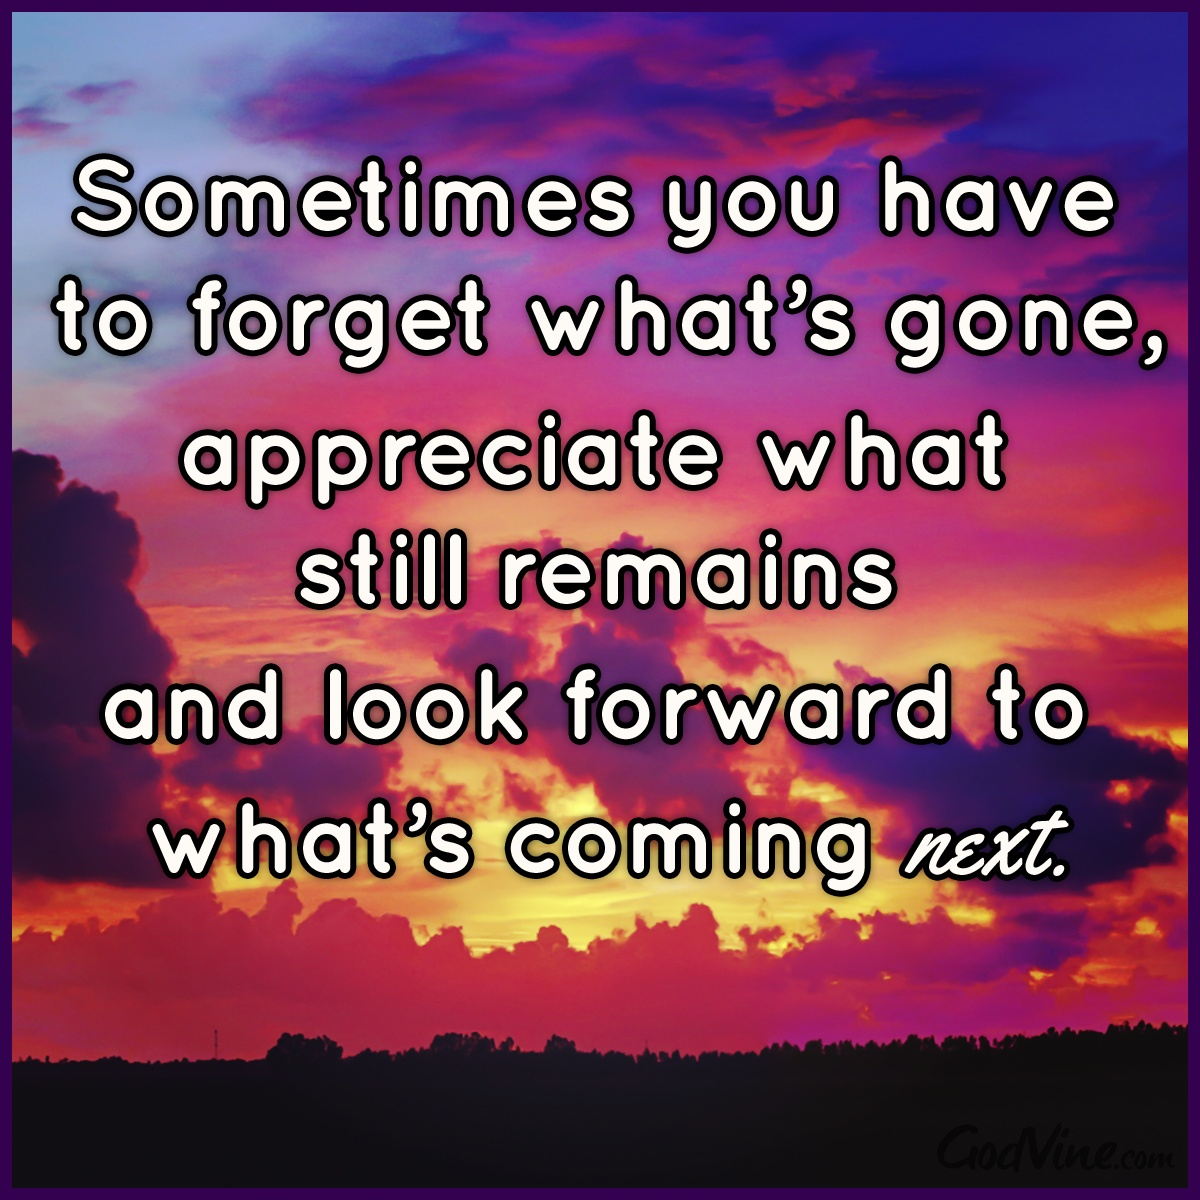 Sometimes You Have to Forget What's Gone